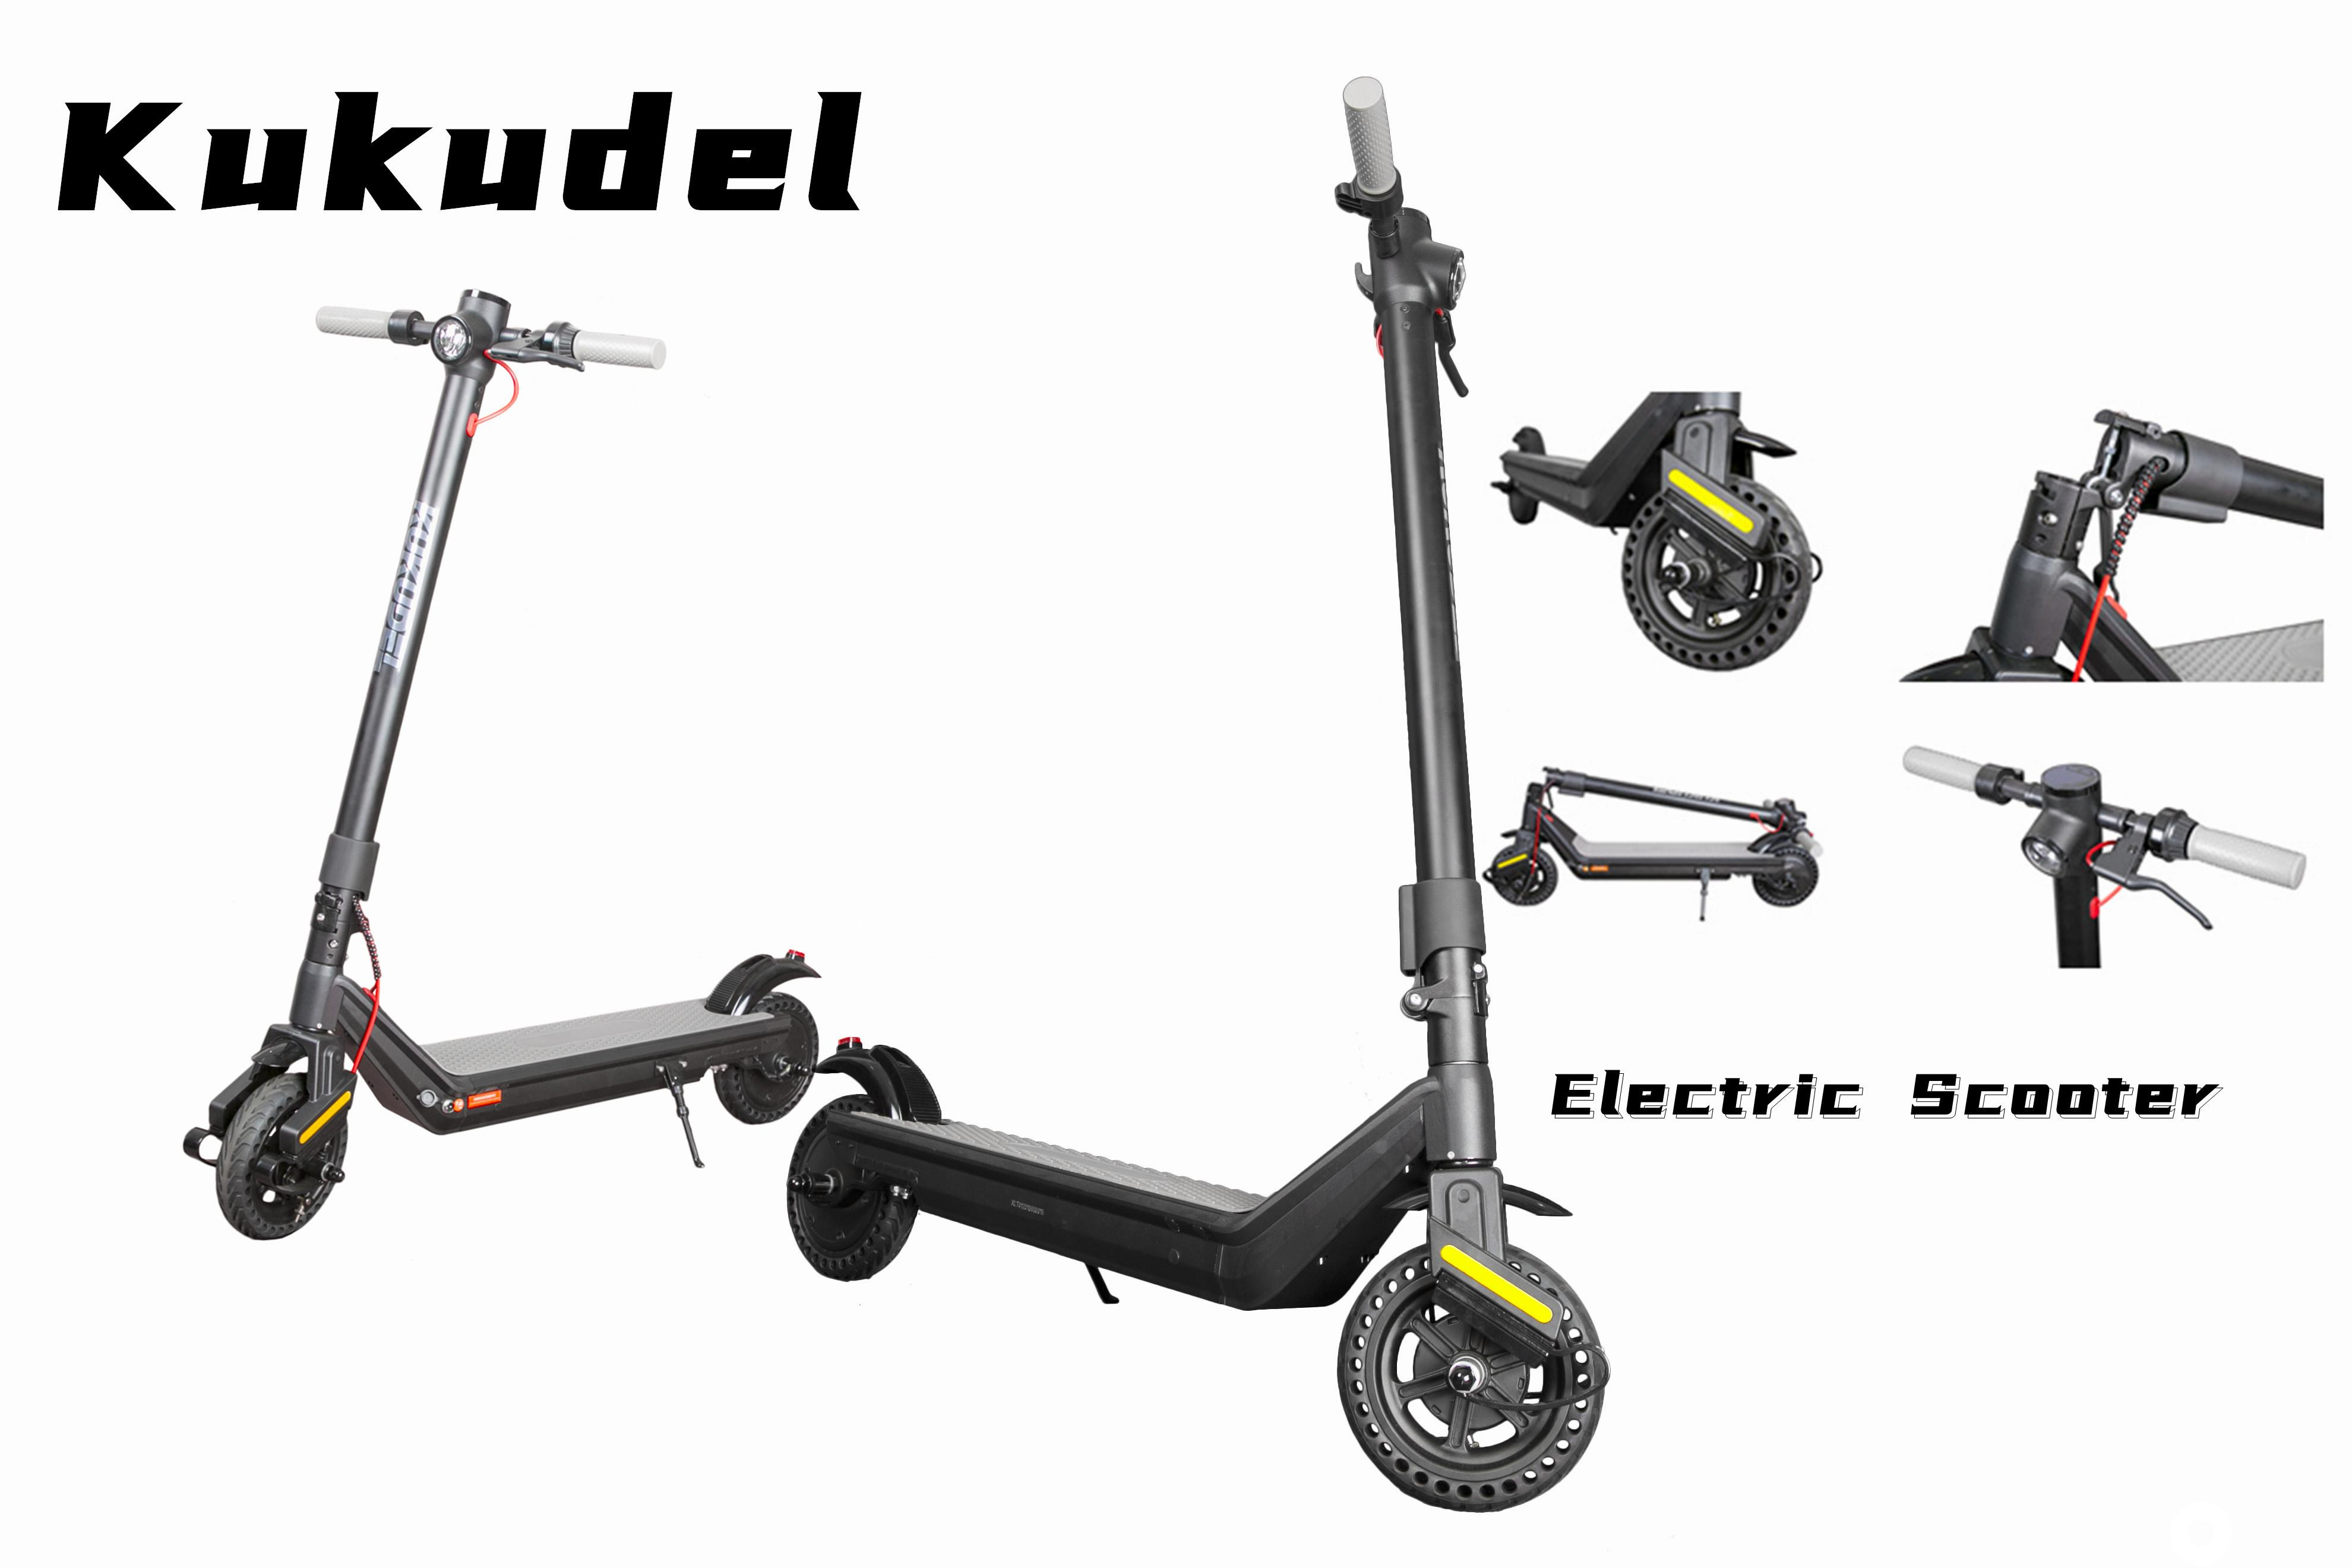 Portable Scooter for Commuting 856p 7.5Ah Patented shock absorption Two Wheel Stand Kick Scooter Electric Adult Scooter